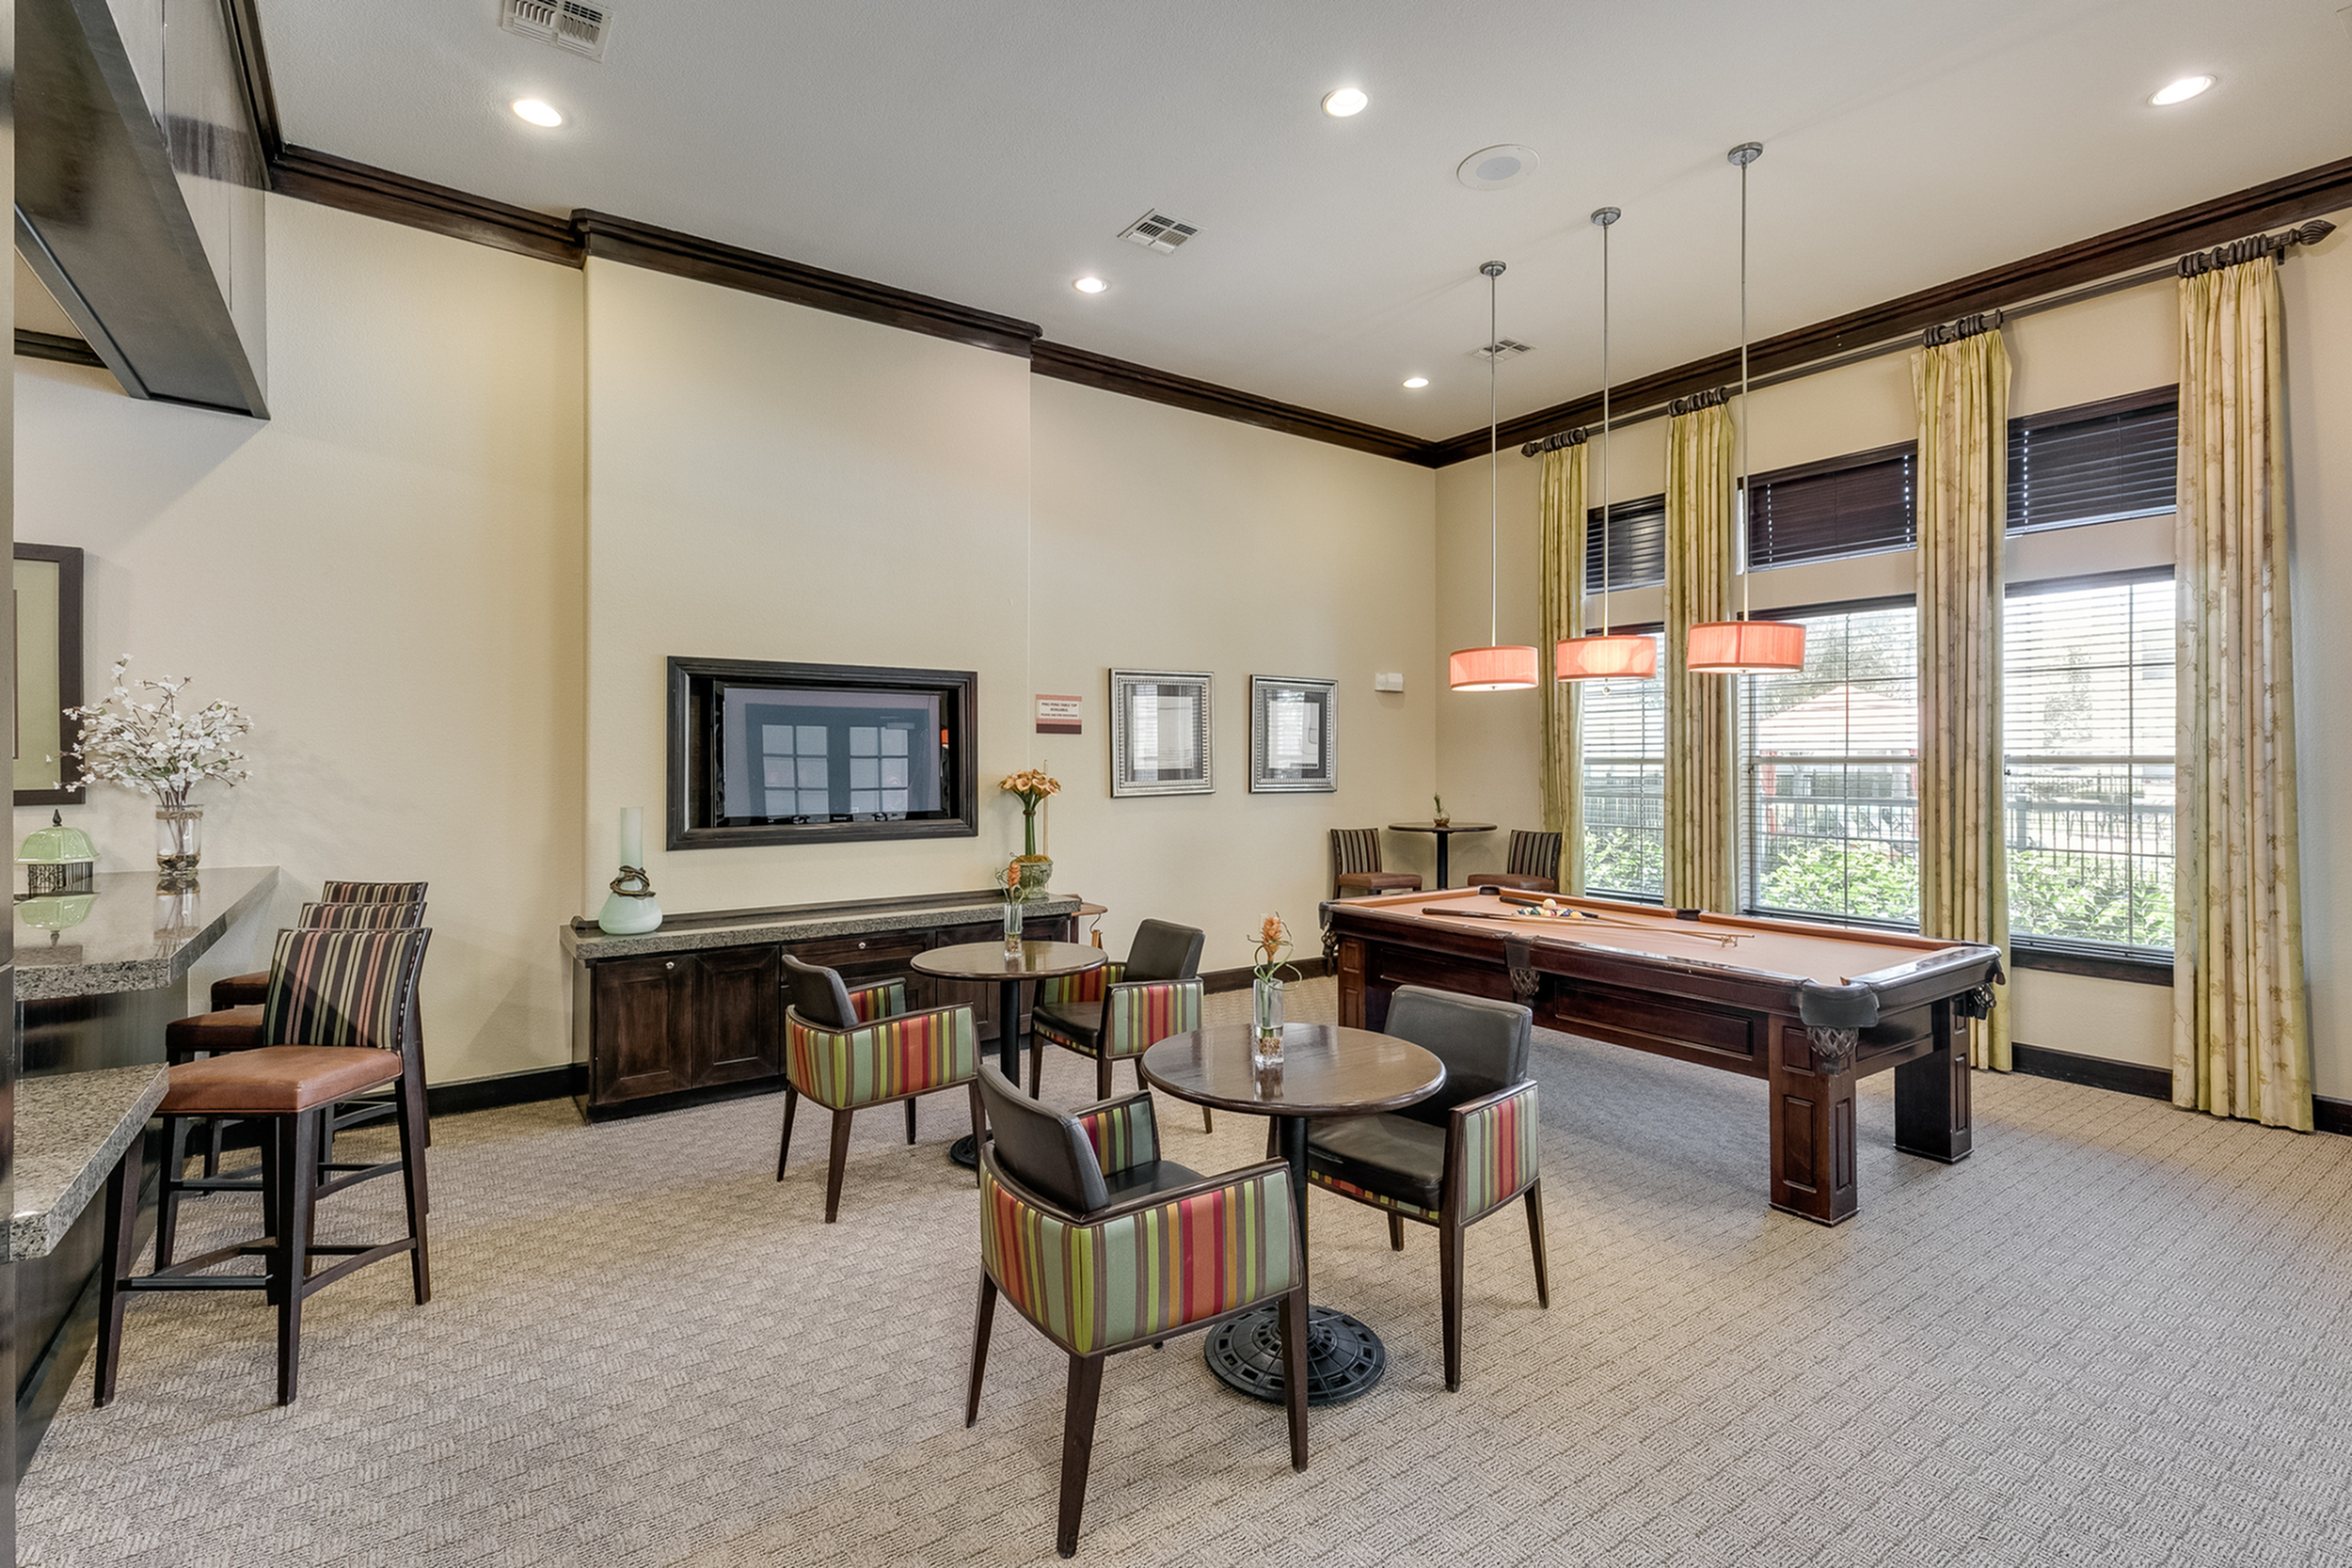 View of Clubroom, Showing Pool Table, Seating, Décor, and Windows at Retreat at Stafford Apartments